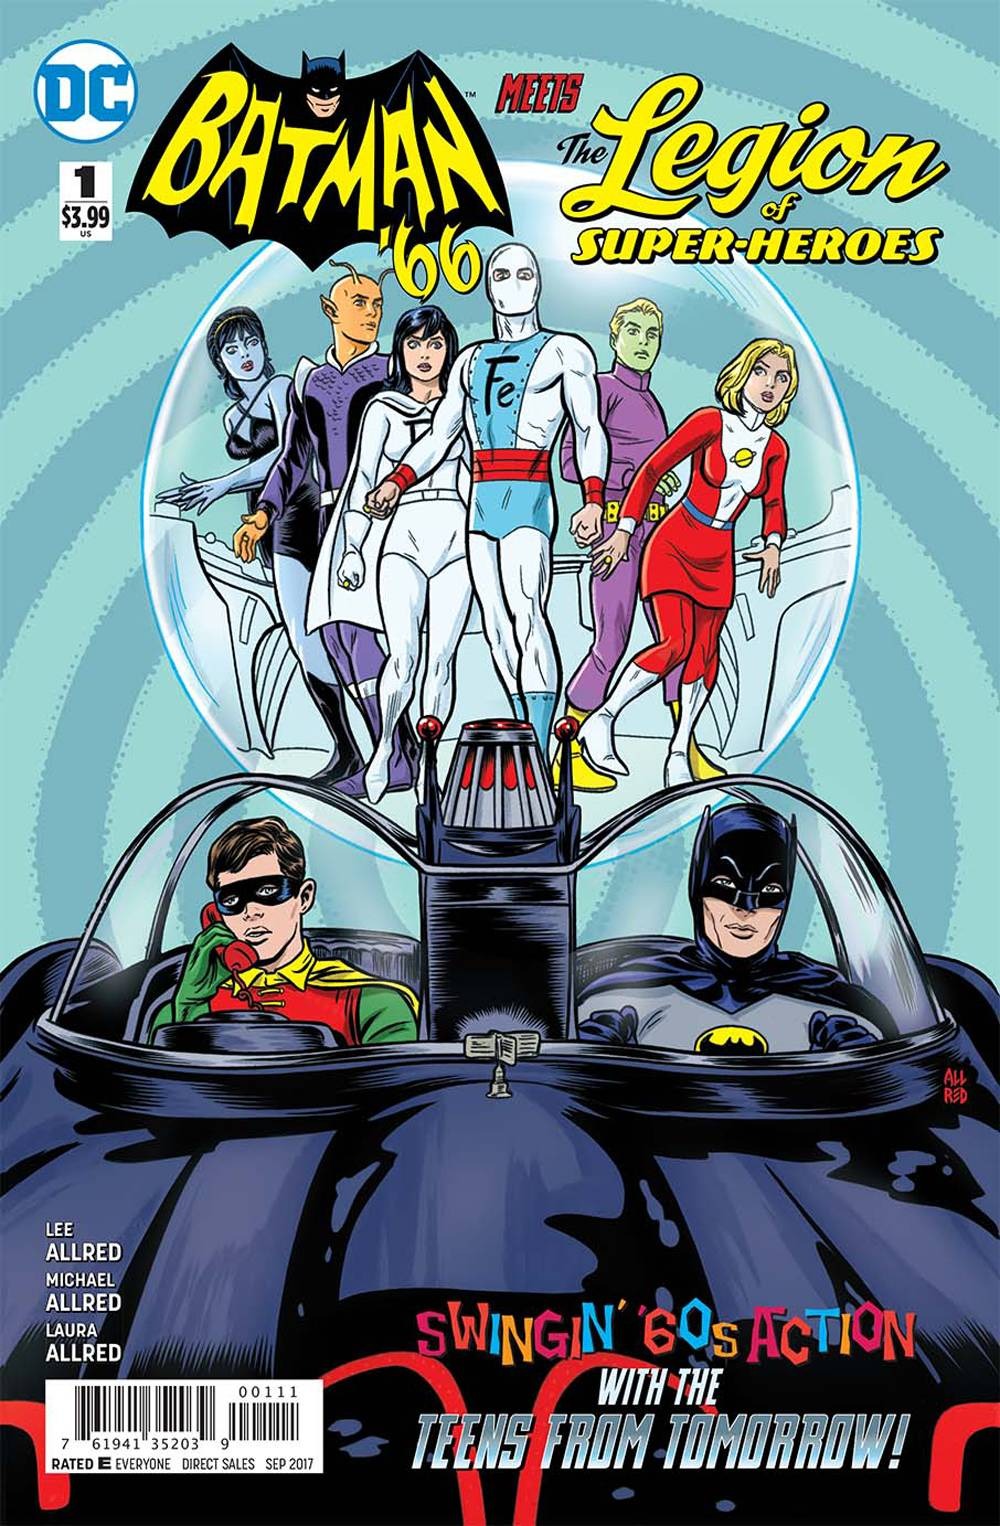 BATMAN 66 MEETS THE LEGION OF SUPER HEROES 1.jpg